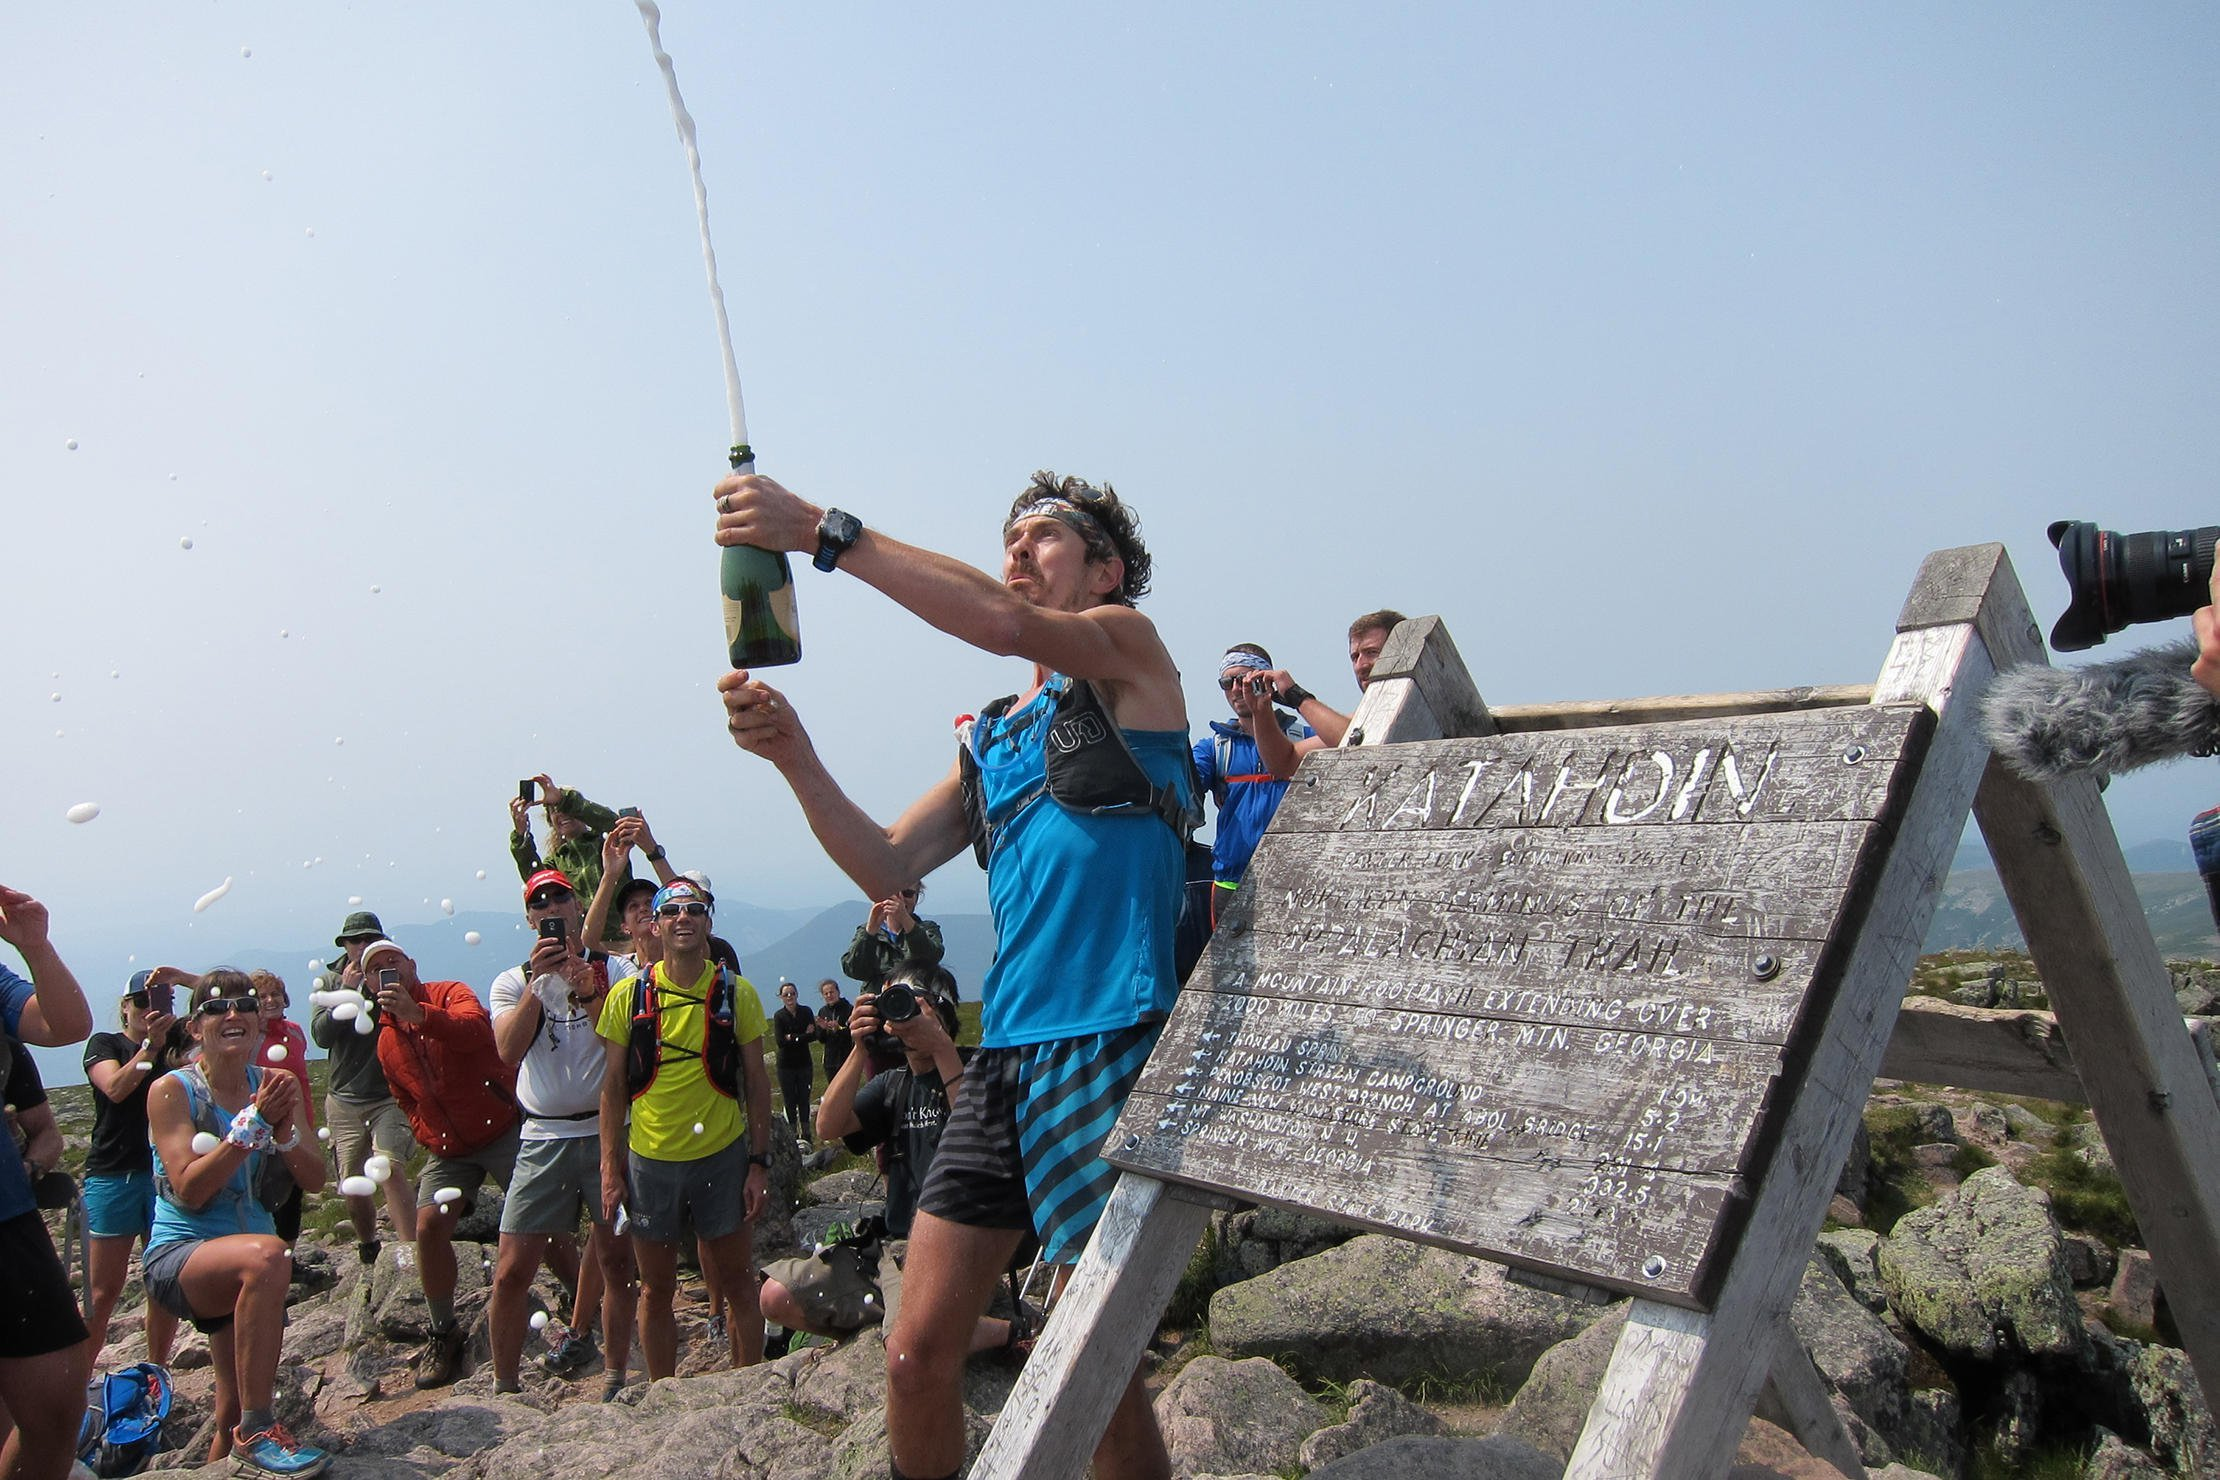 Summit of Mount Katadin during the Appalachian Trail FKT. (Image: Kit Fox)